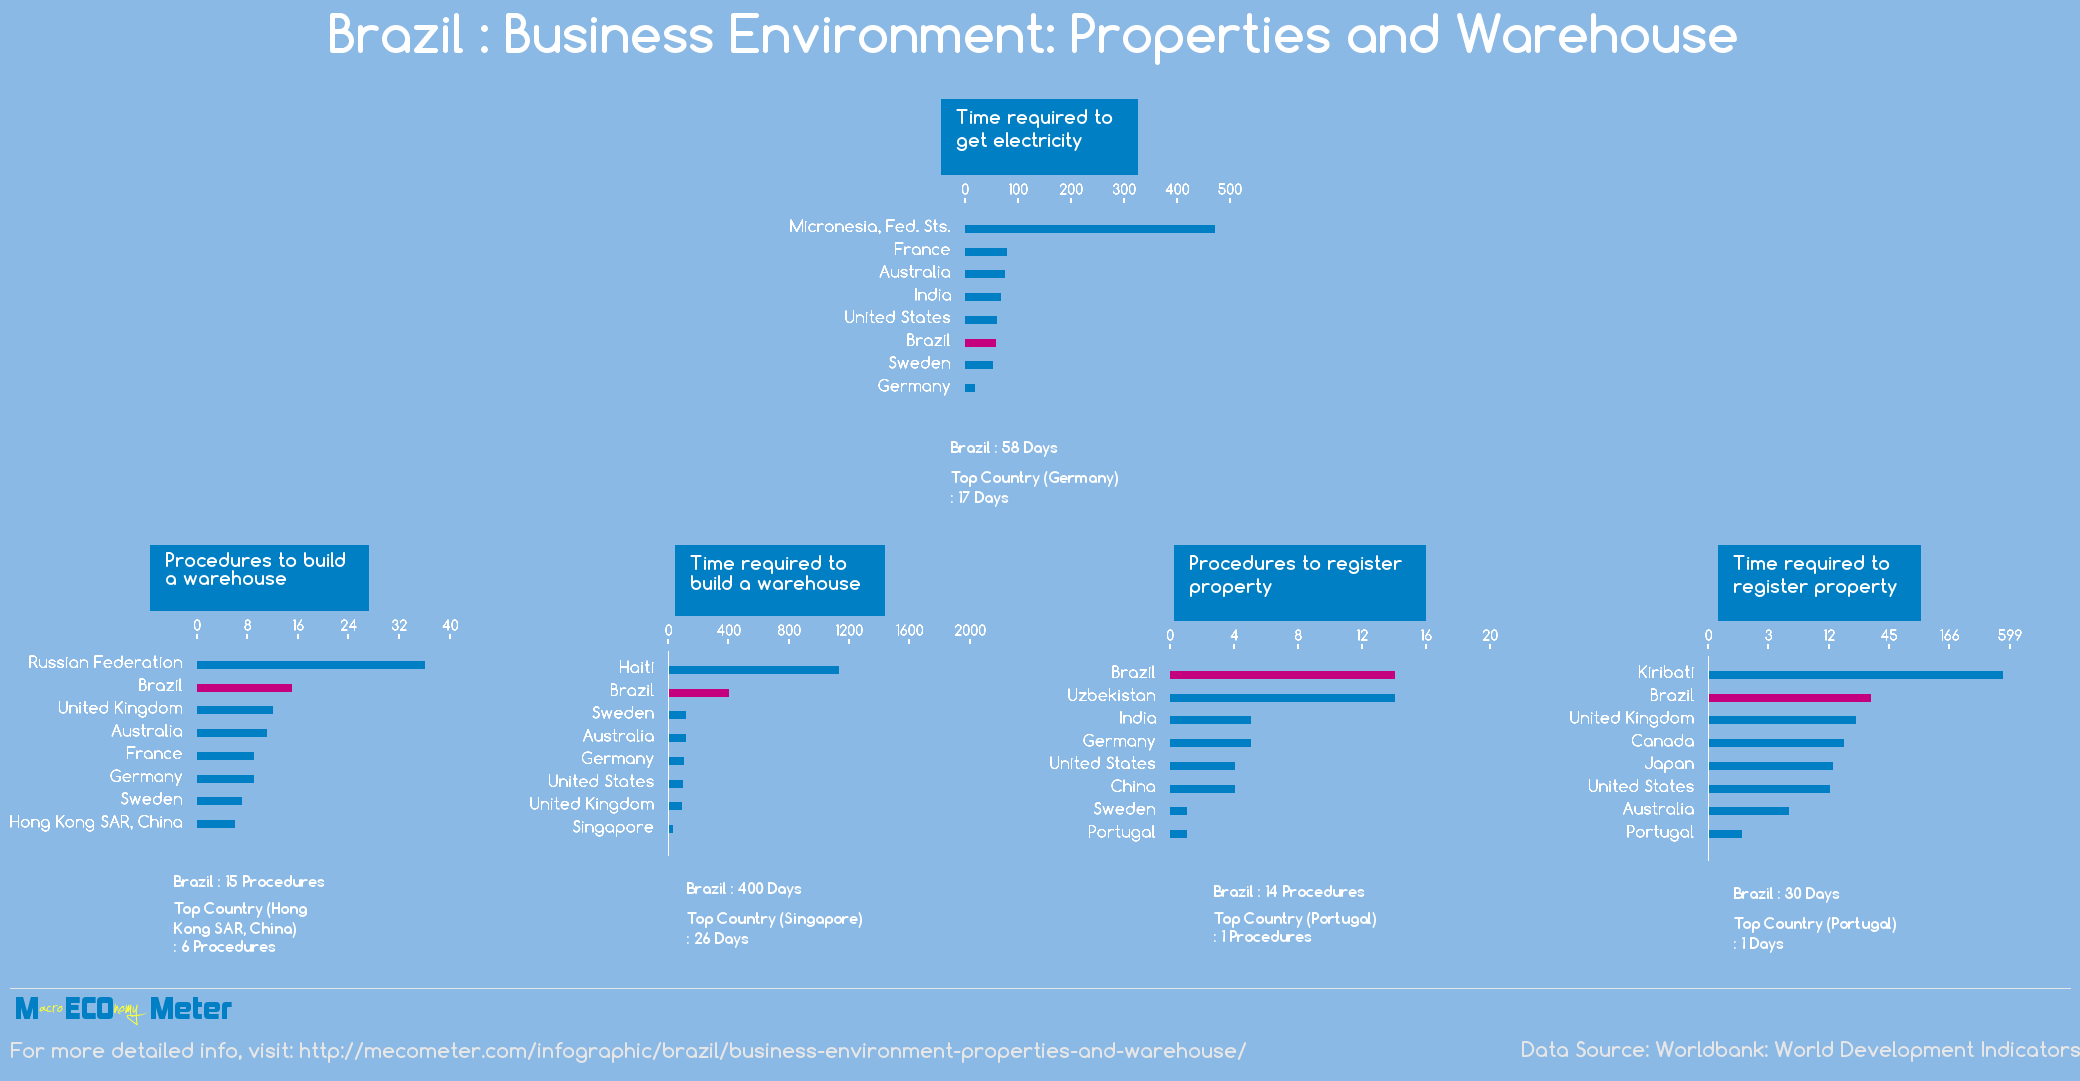 Brazil : Business Environment: Properties and Warehouse